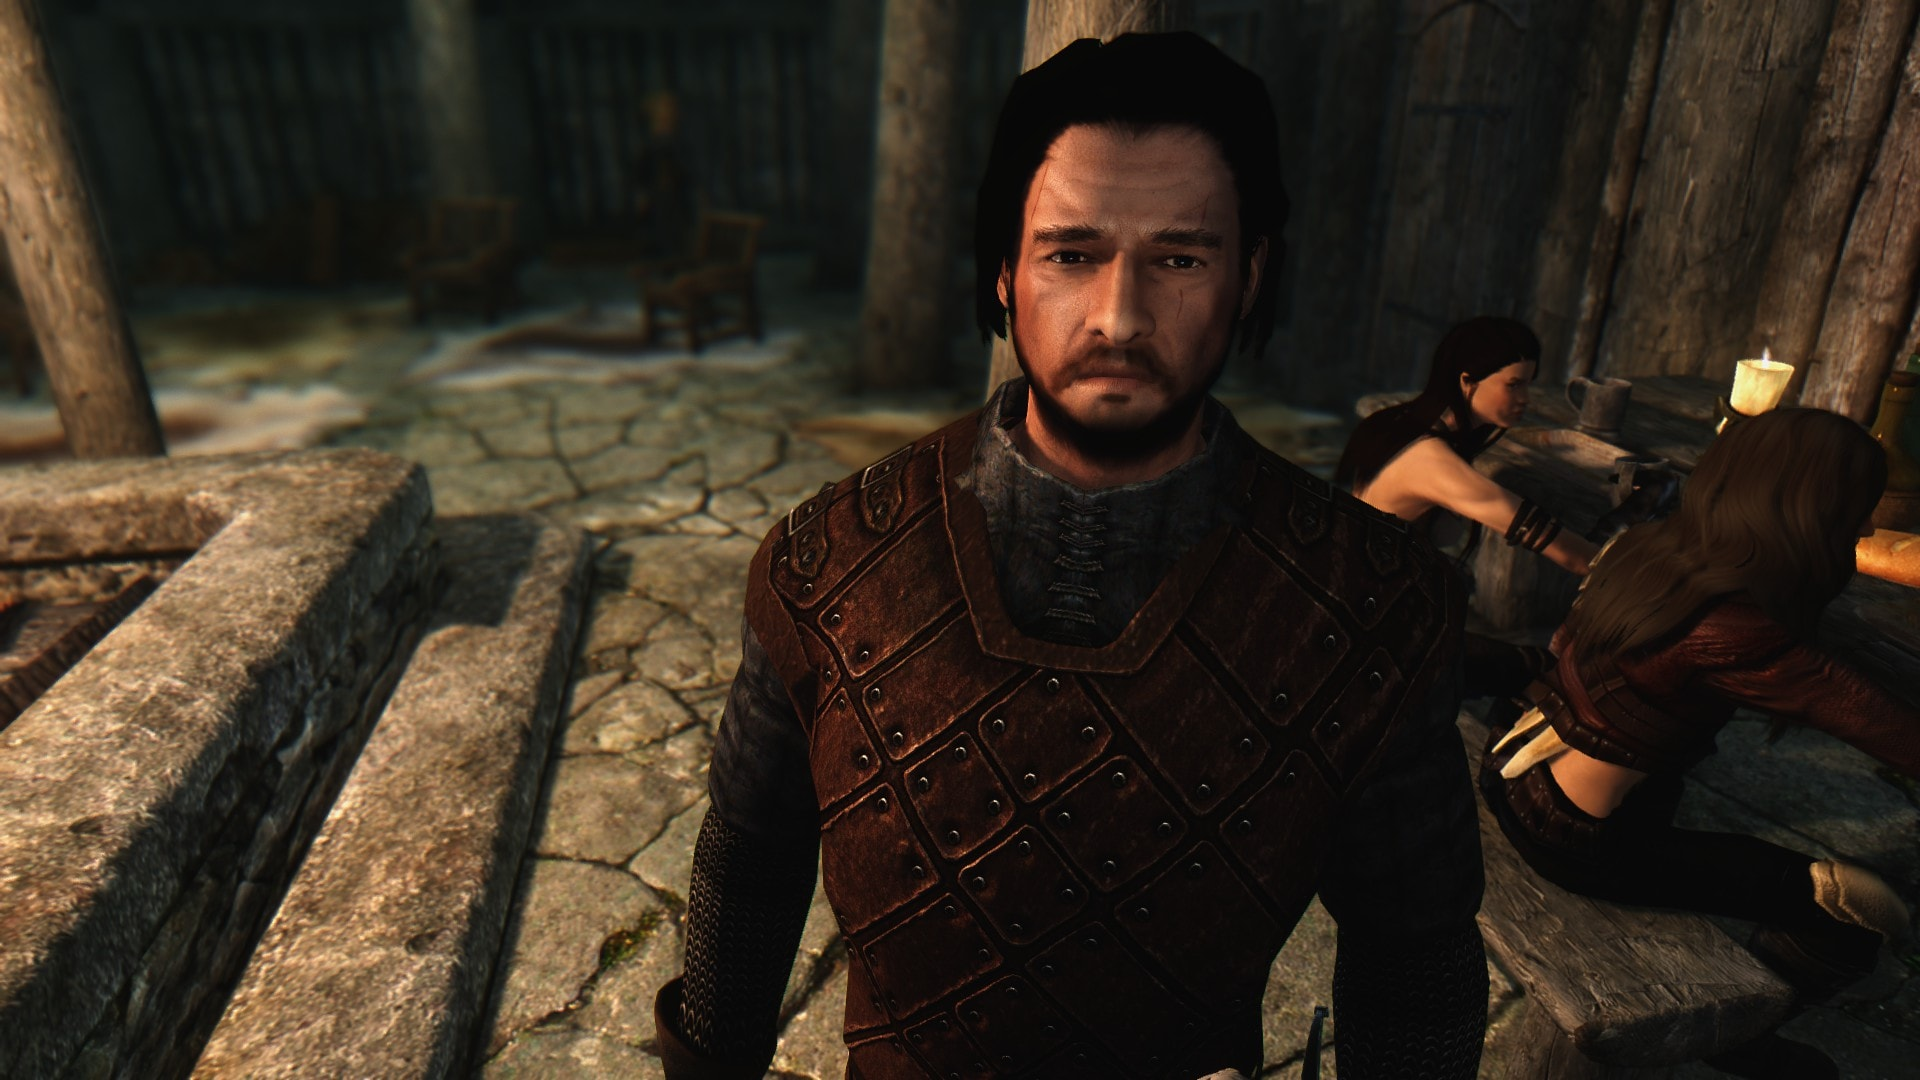 Jon Snow follower from HBO Game of Thrones | Напарник - Джон Сноу